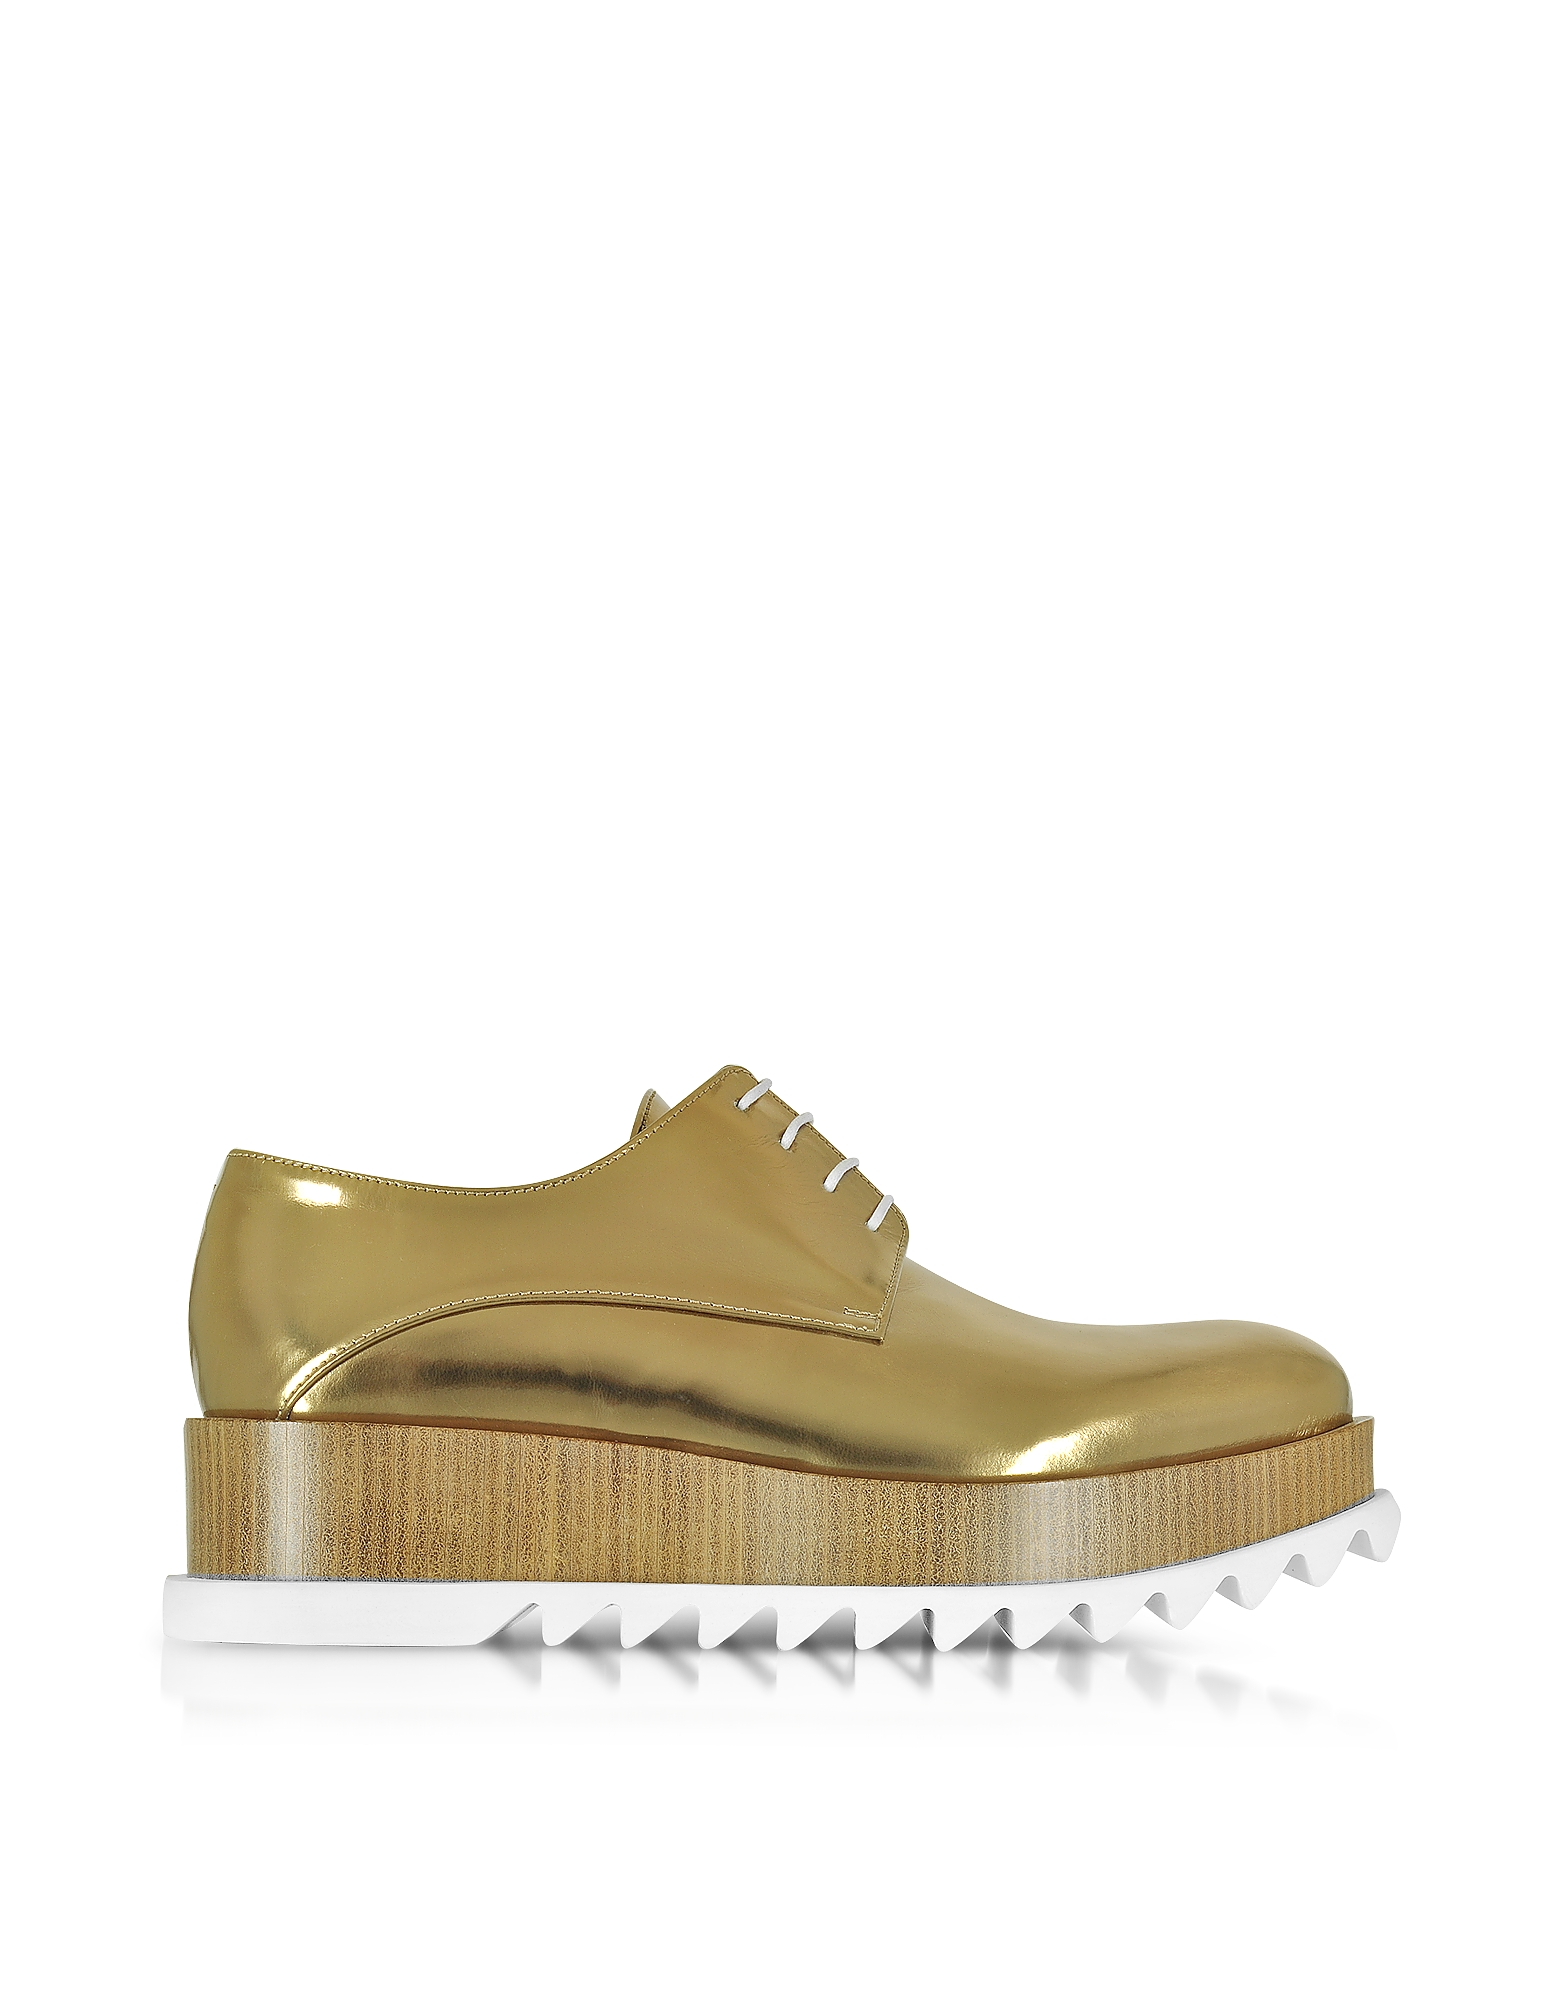 Jil Sander Shoes, Bronze Leather Platform Oxford Shoe